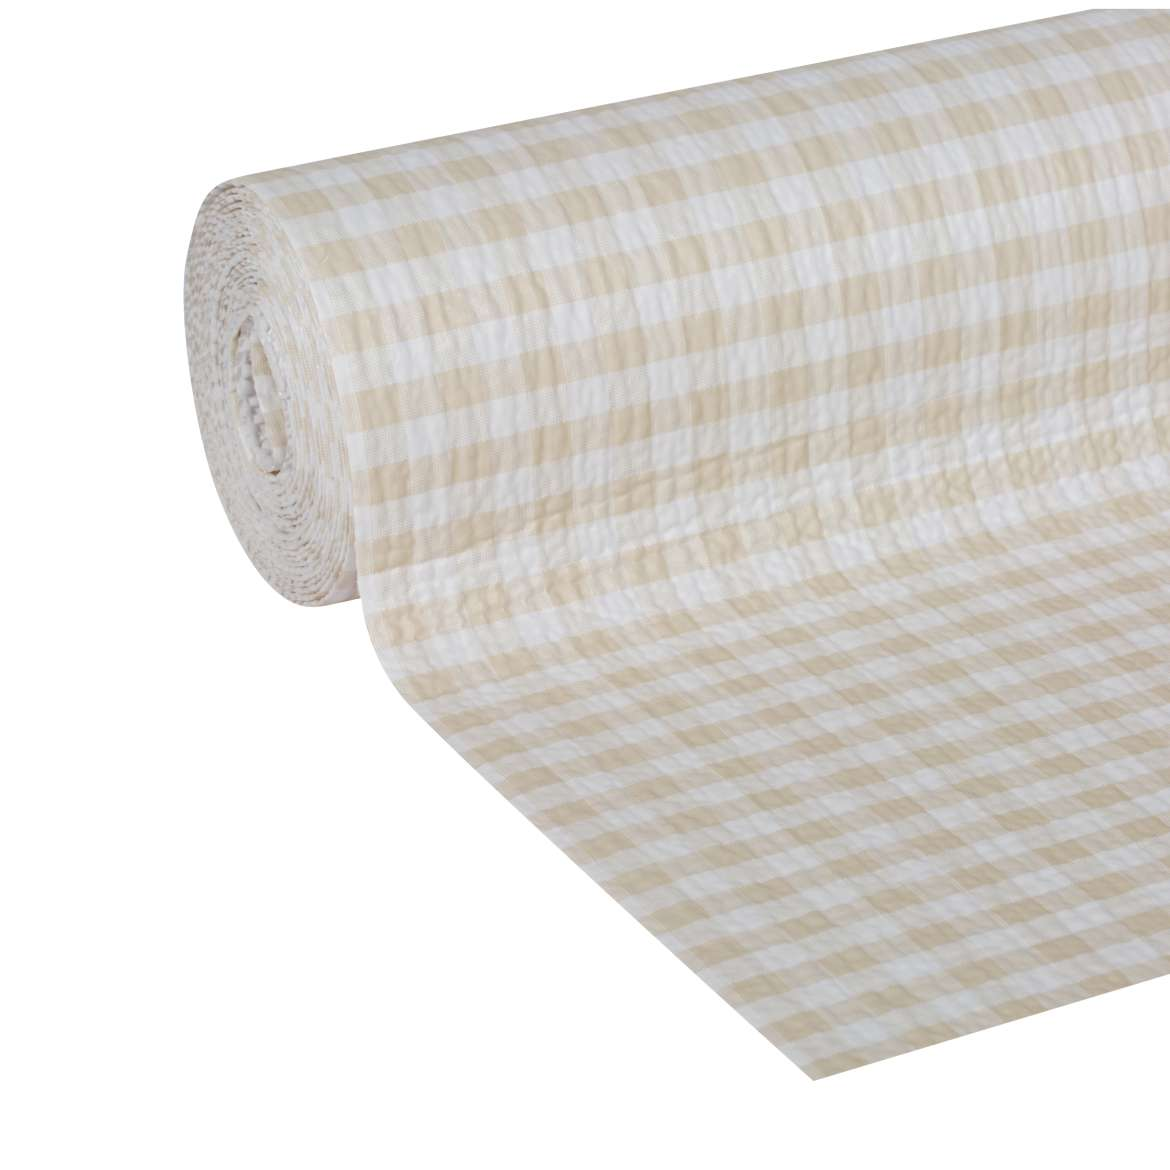 "Duck Brand Smooth Top Easy Shelf Liner, 12"" x 10', Sandstone Gingham"